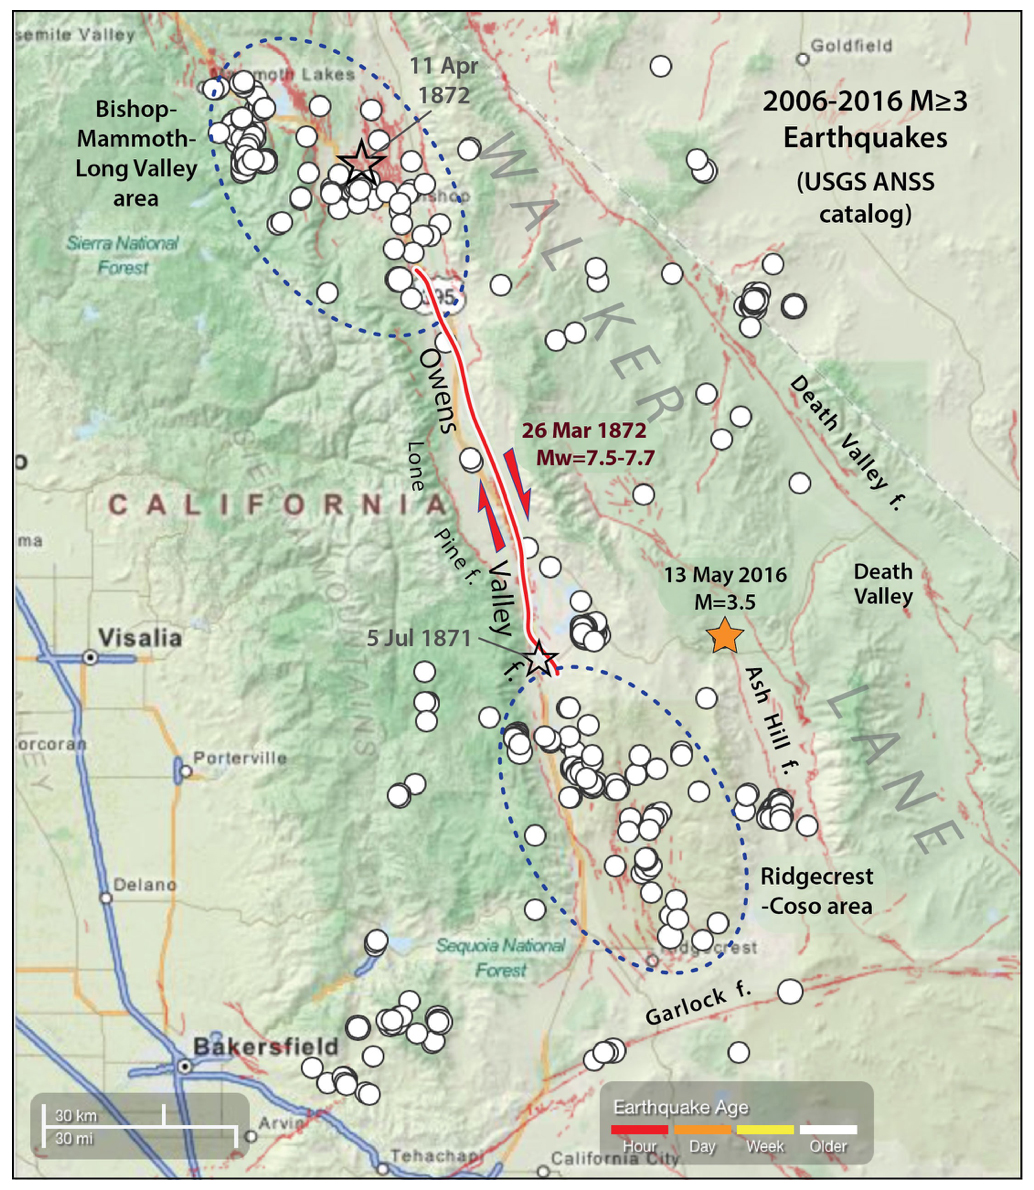 A decade of seismicity reveals the strangely symmetrical distribution of earthquake clusters located beyond the ends of the 1872 Mw~7.6 earthquake. Both clusters enclose mixtures of hot springs, and extensional ('normal') faults and strike-slip faults, as well as sporadic eruptions in the past 12,000 or so years. Because of the hot springs, both have geothermal power plants. Several M>6 shocks struck in the 1980's in the northern cluster, and several M~5 quakes struck in the 1990's in the southern cluster.